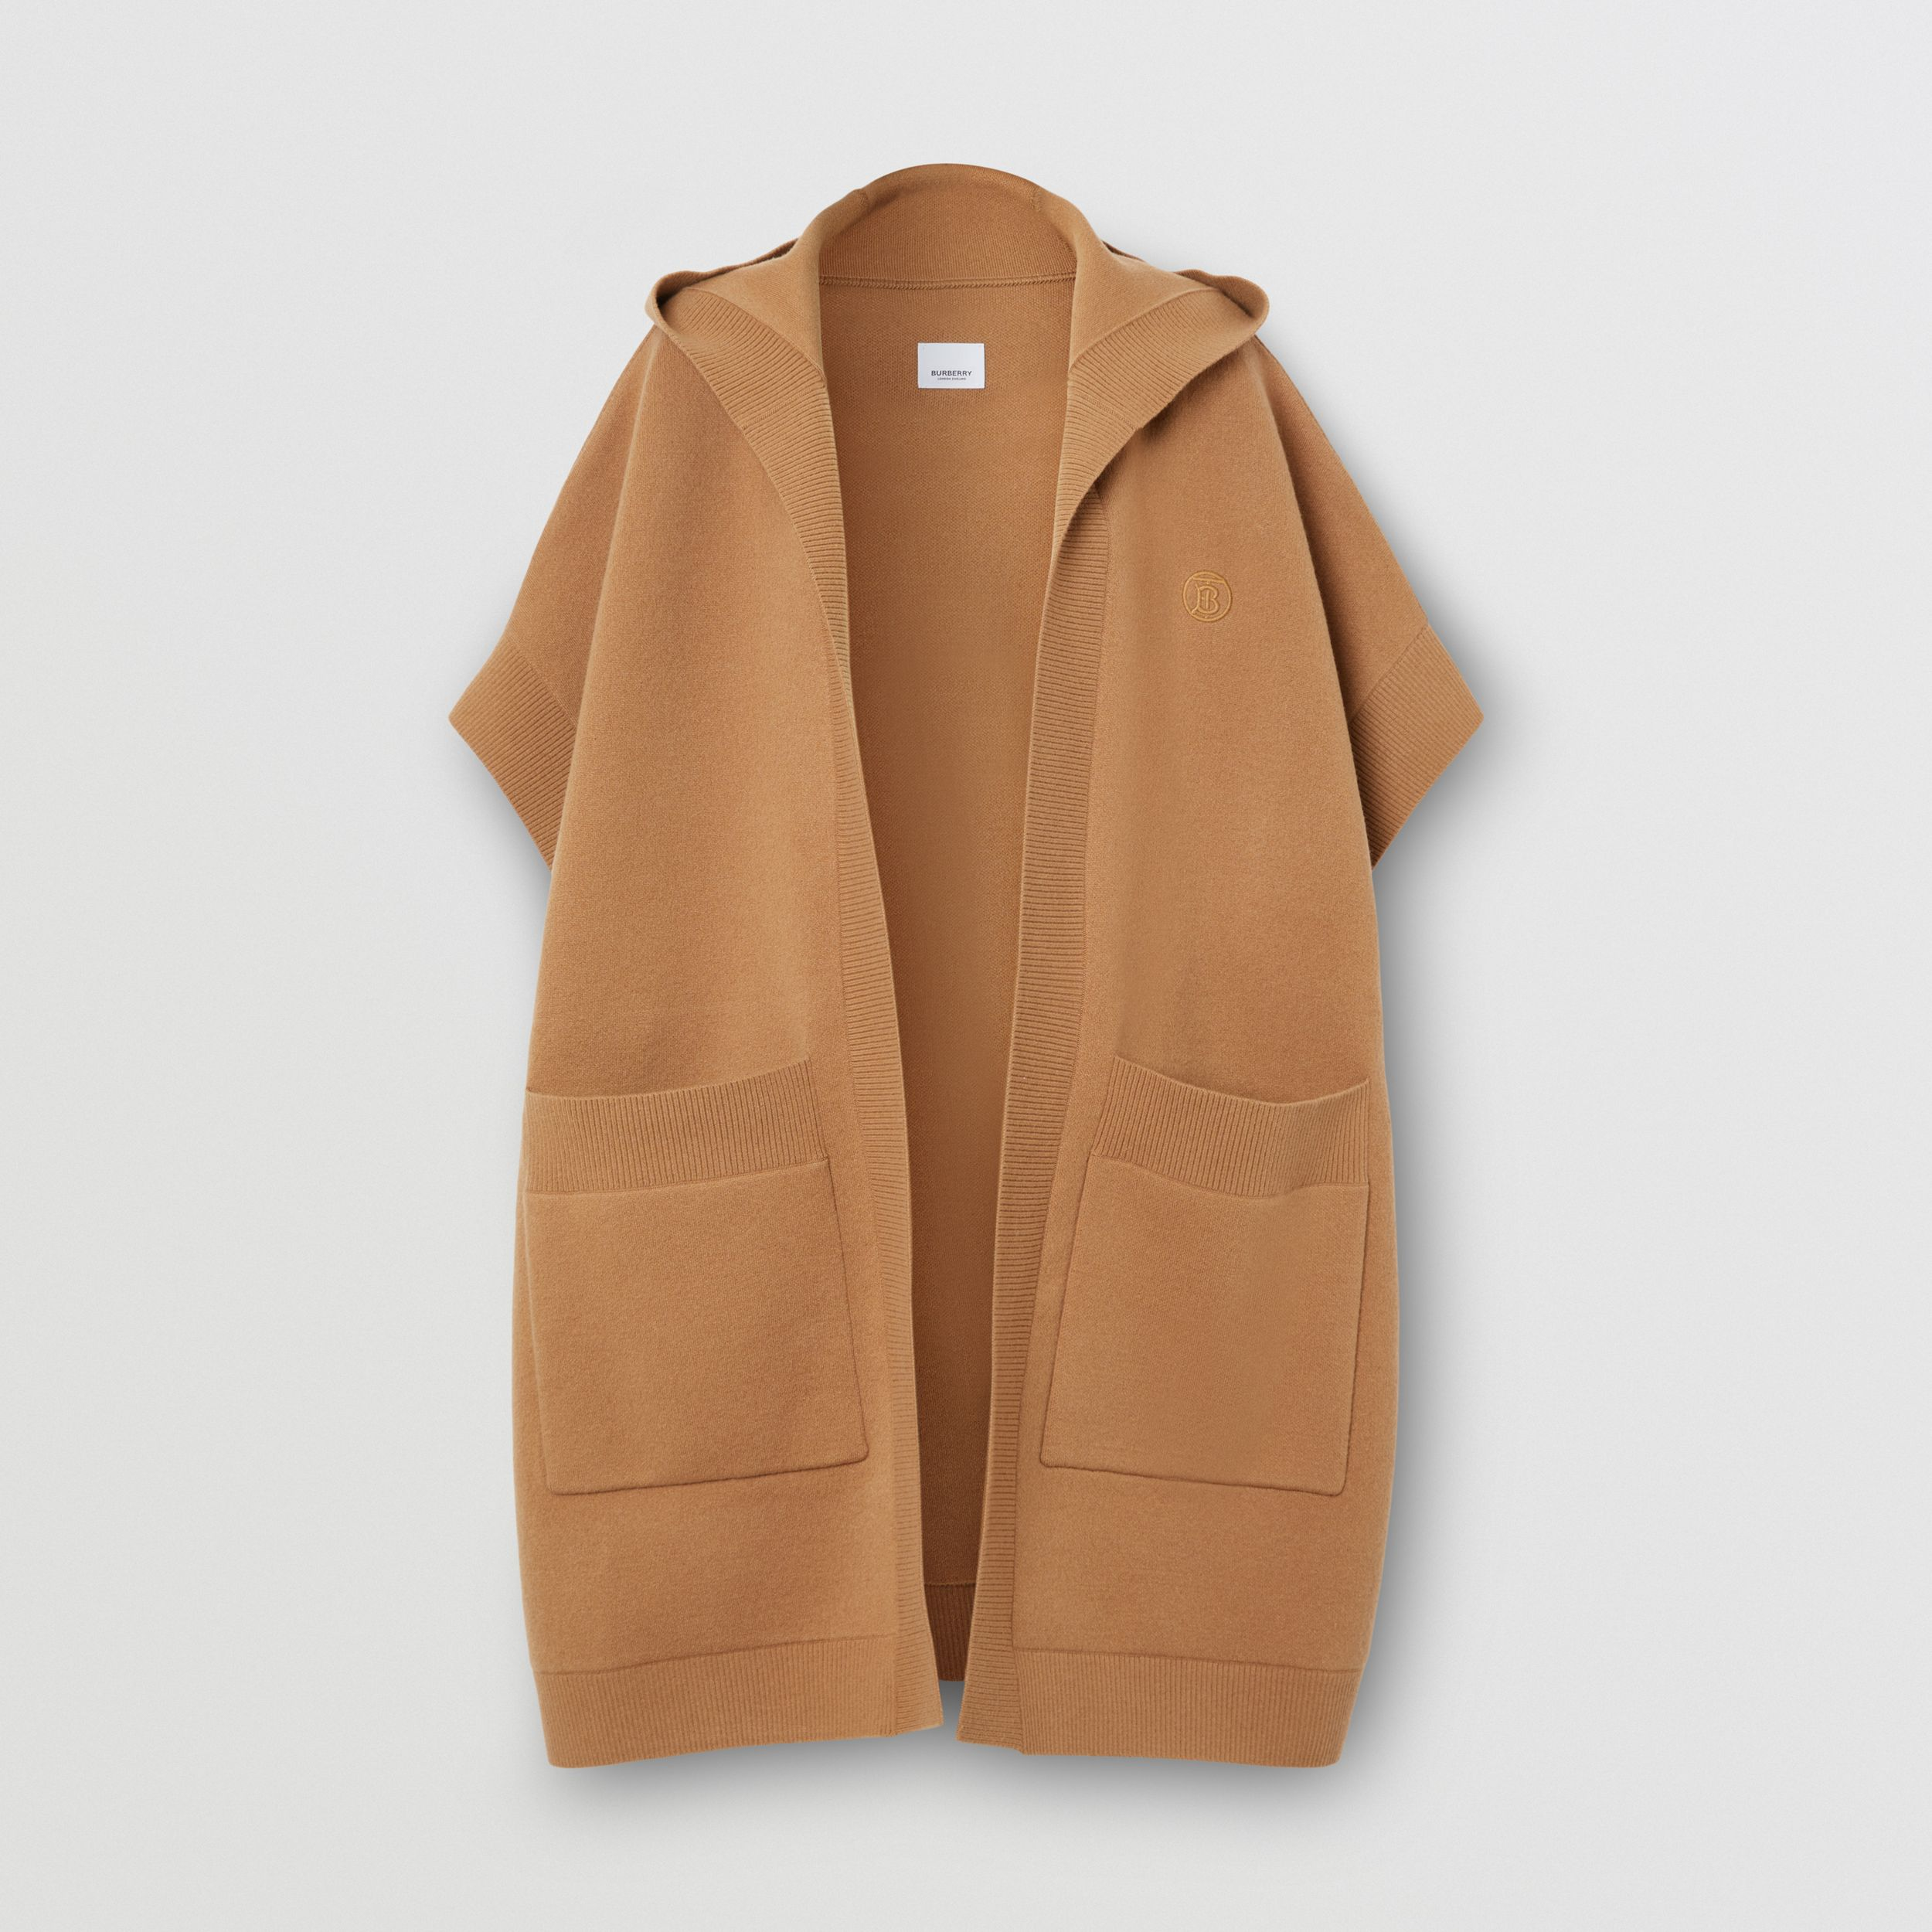 Monogram Motif Cashmere Blend Hooded Cape in Camel - Women | Burberry - 4